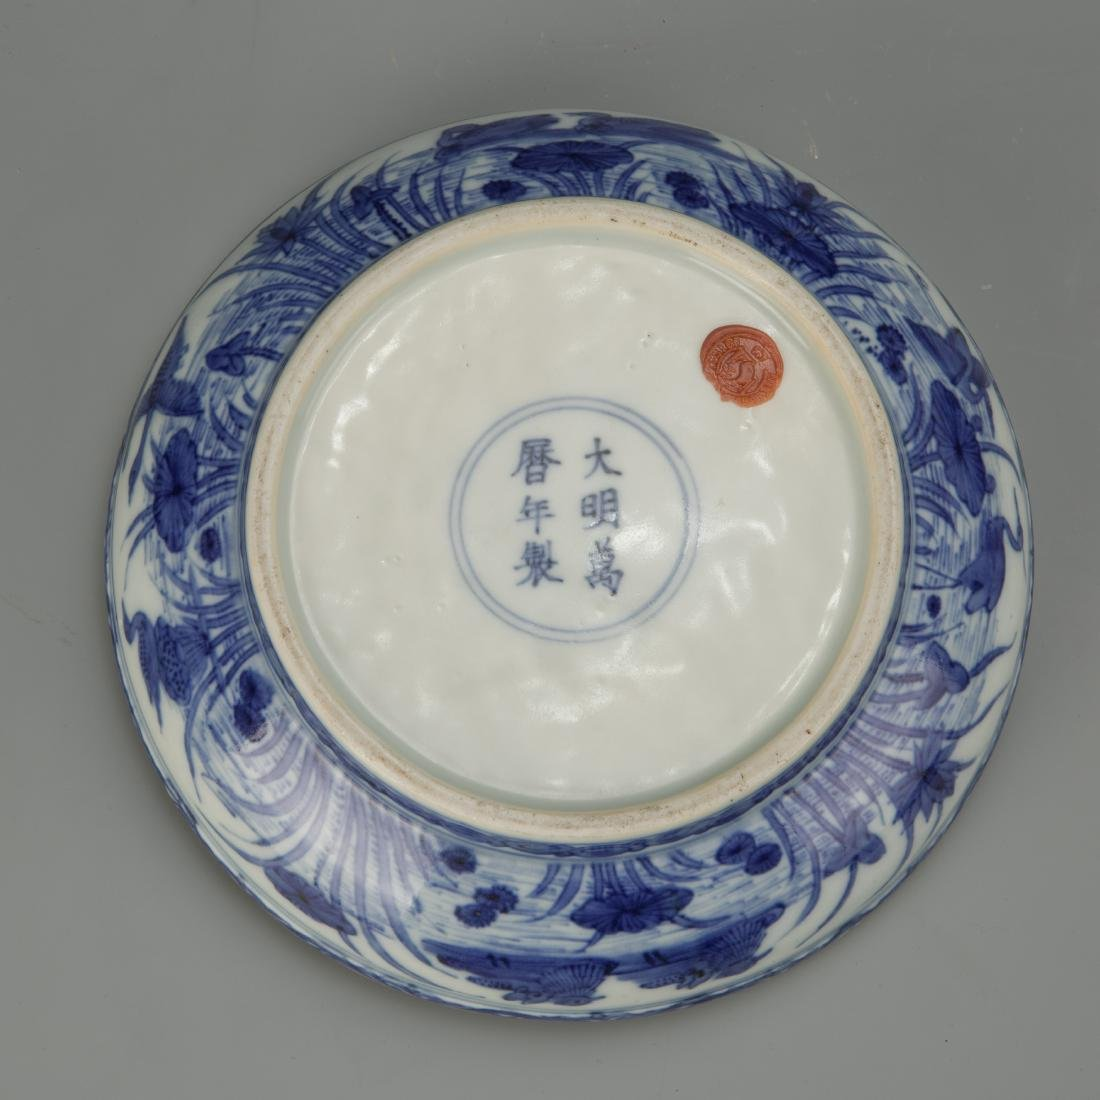 Blue and White Porcelain Box with Mark - 6